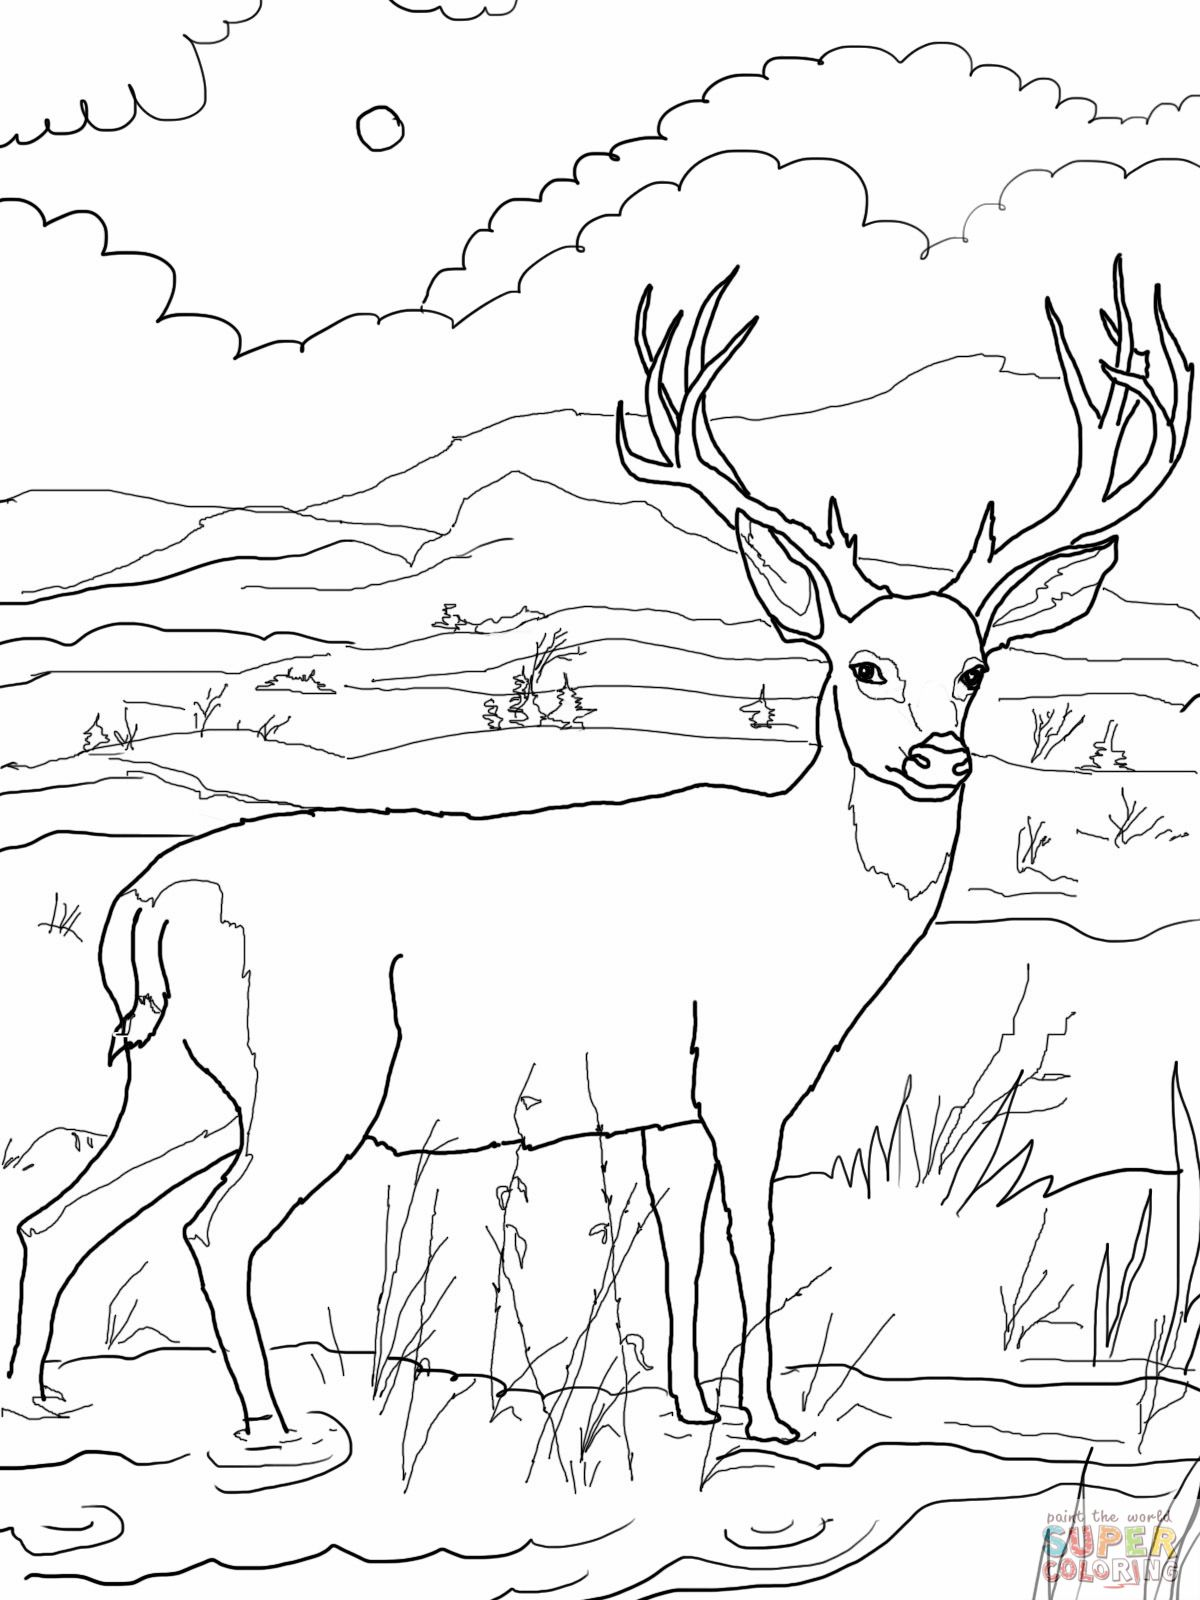 Deer Coloring Pages Blacktail Mule Deer Coloring Online Super